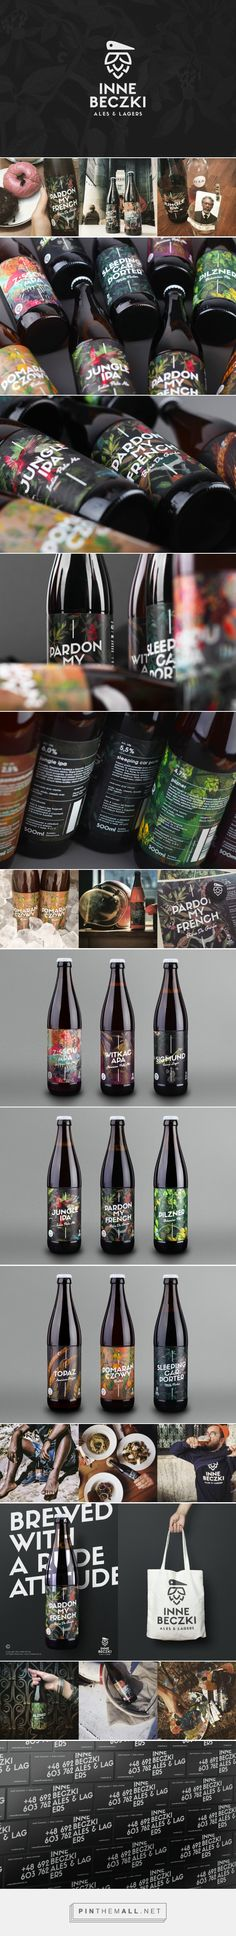 Inne Beczki beer labels designed by Redkroft (Poland) - http://www.packagingoftheworld.com/2016/02/inne-beczki.html